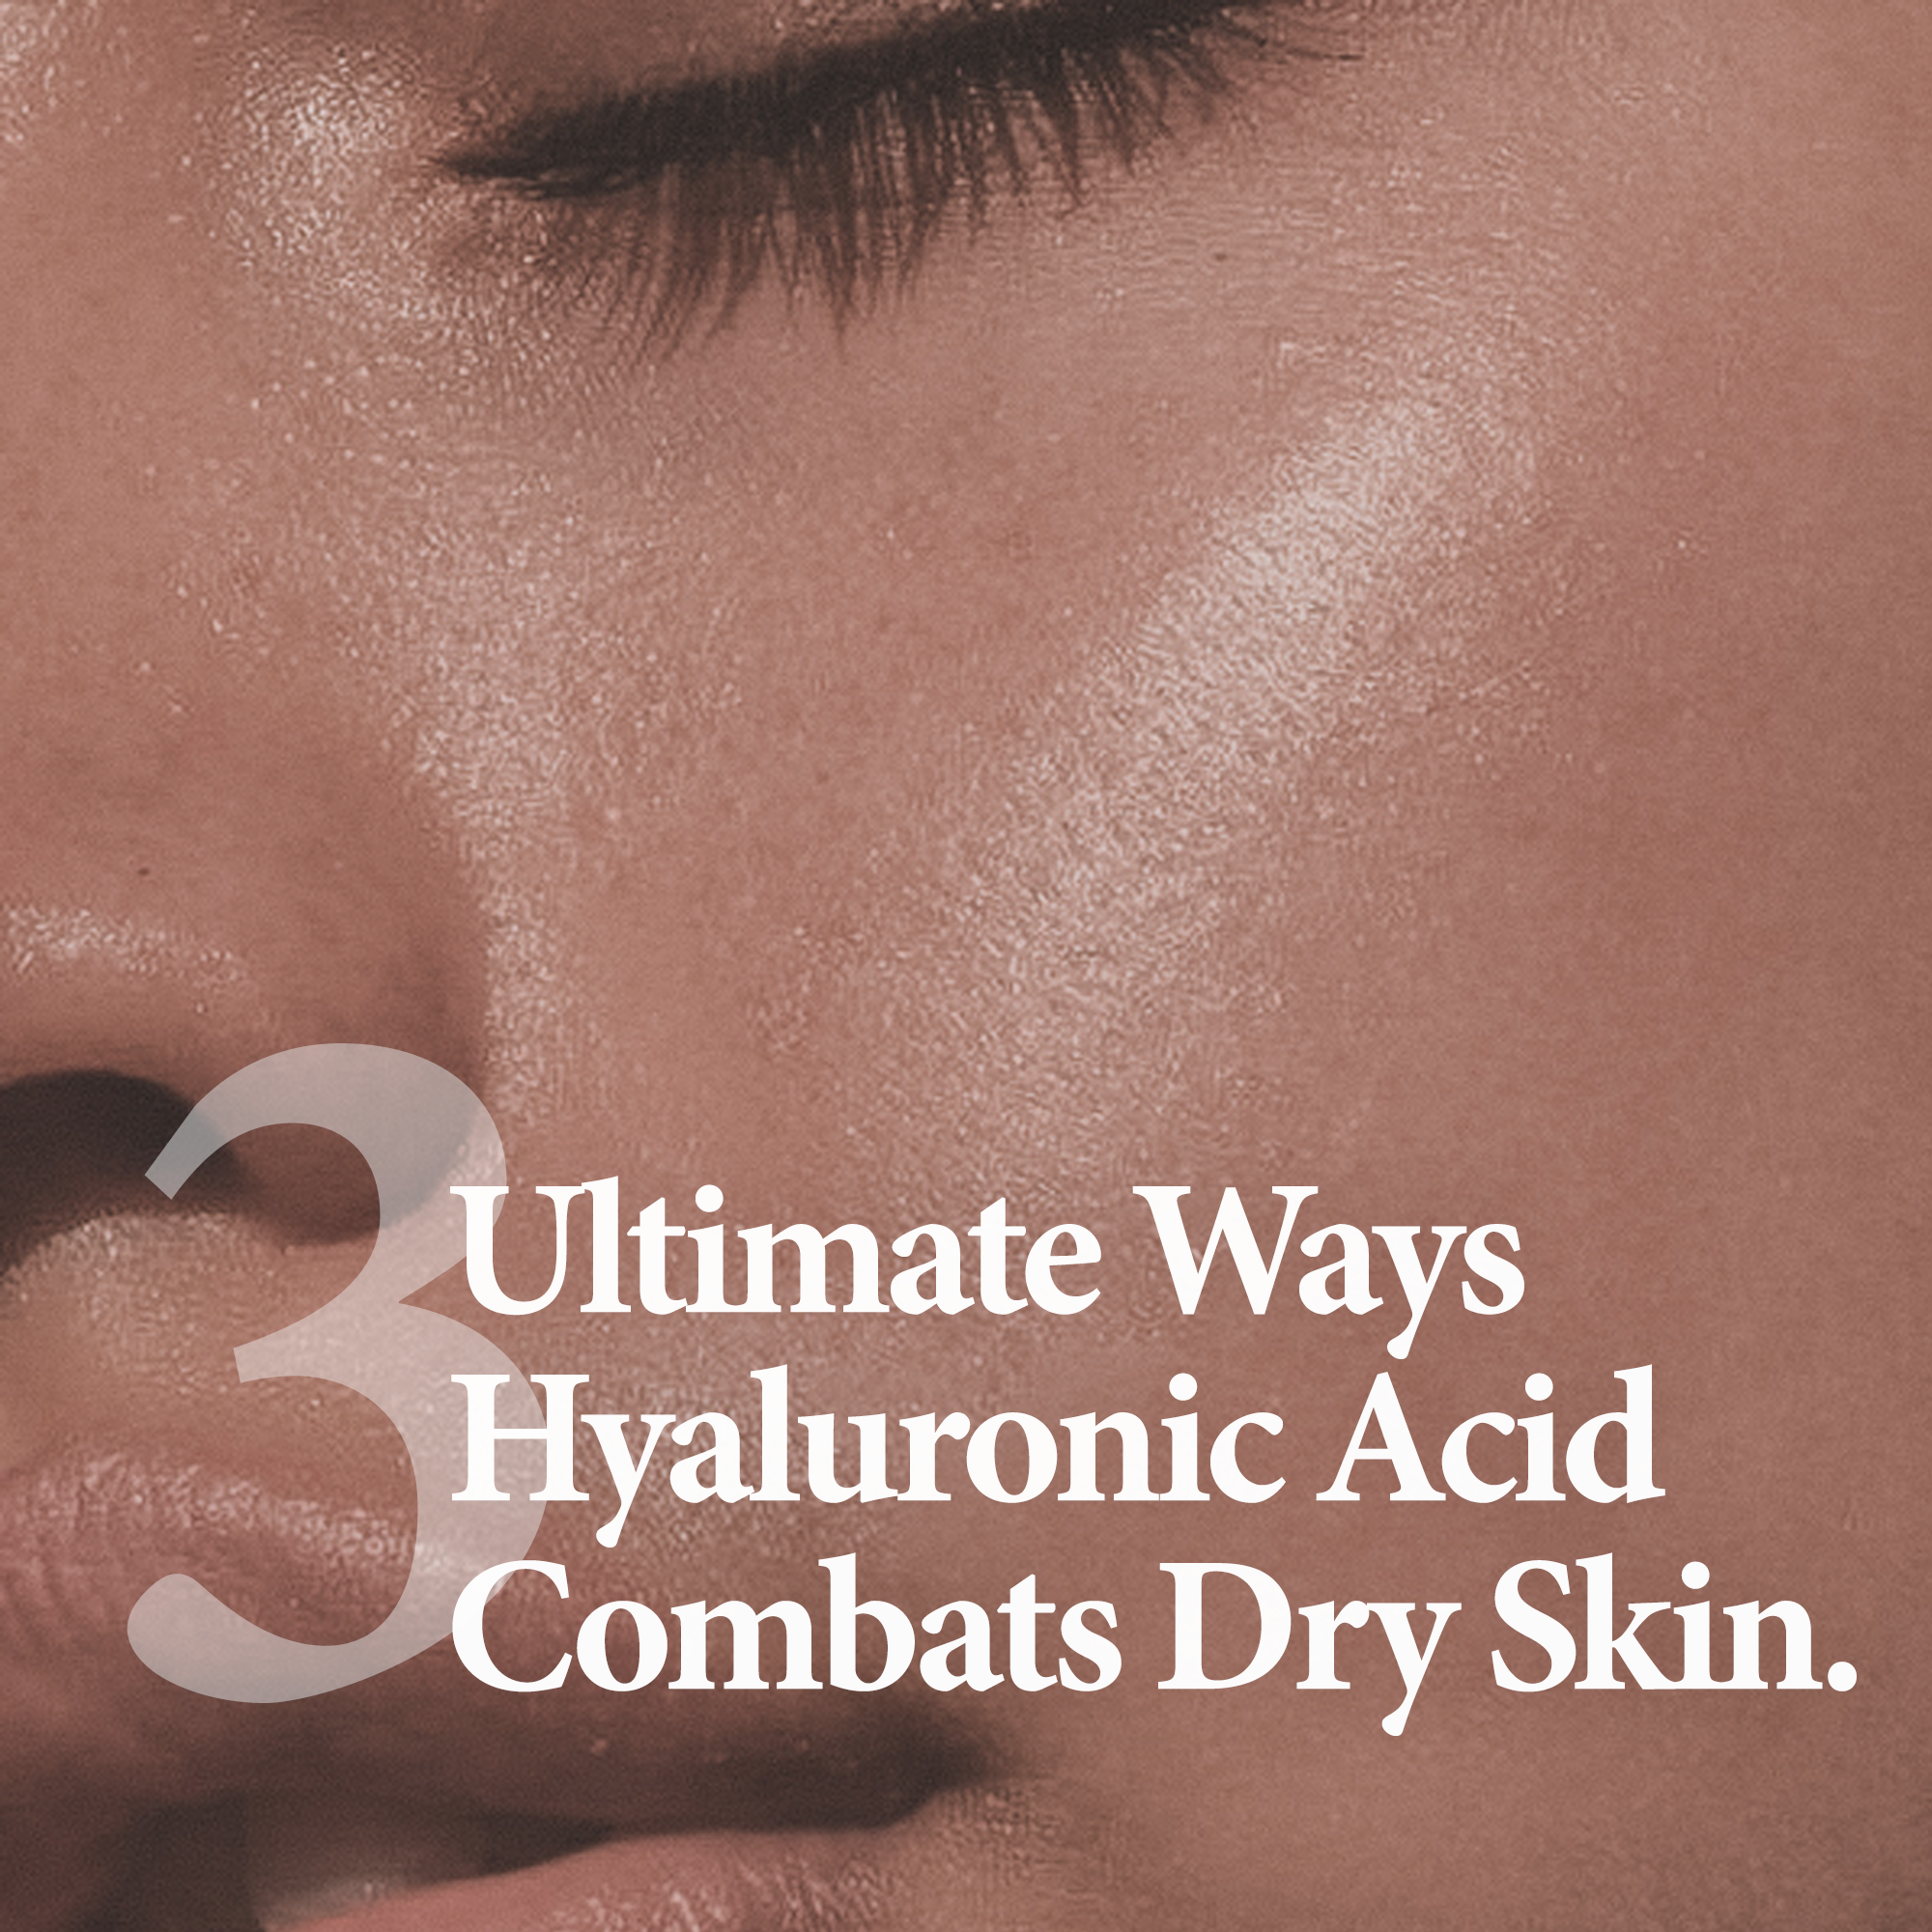 RELATED Discover our investigation into Hyaluronic Acid.